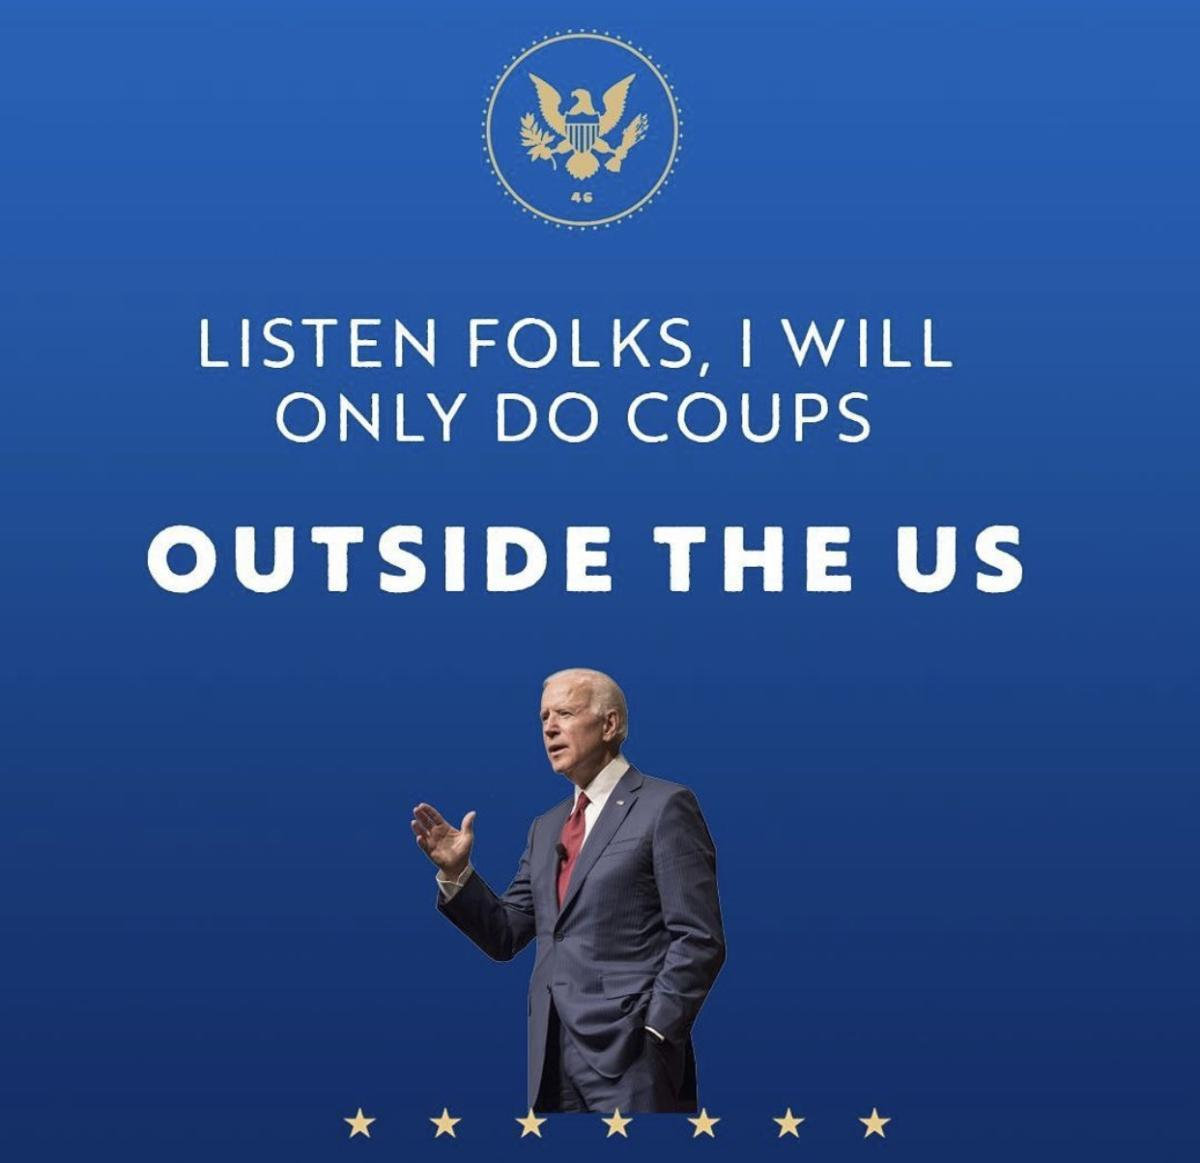 Biden about Coup